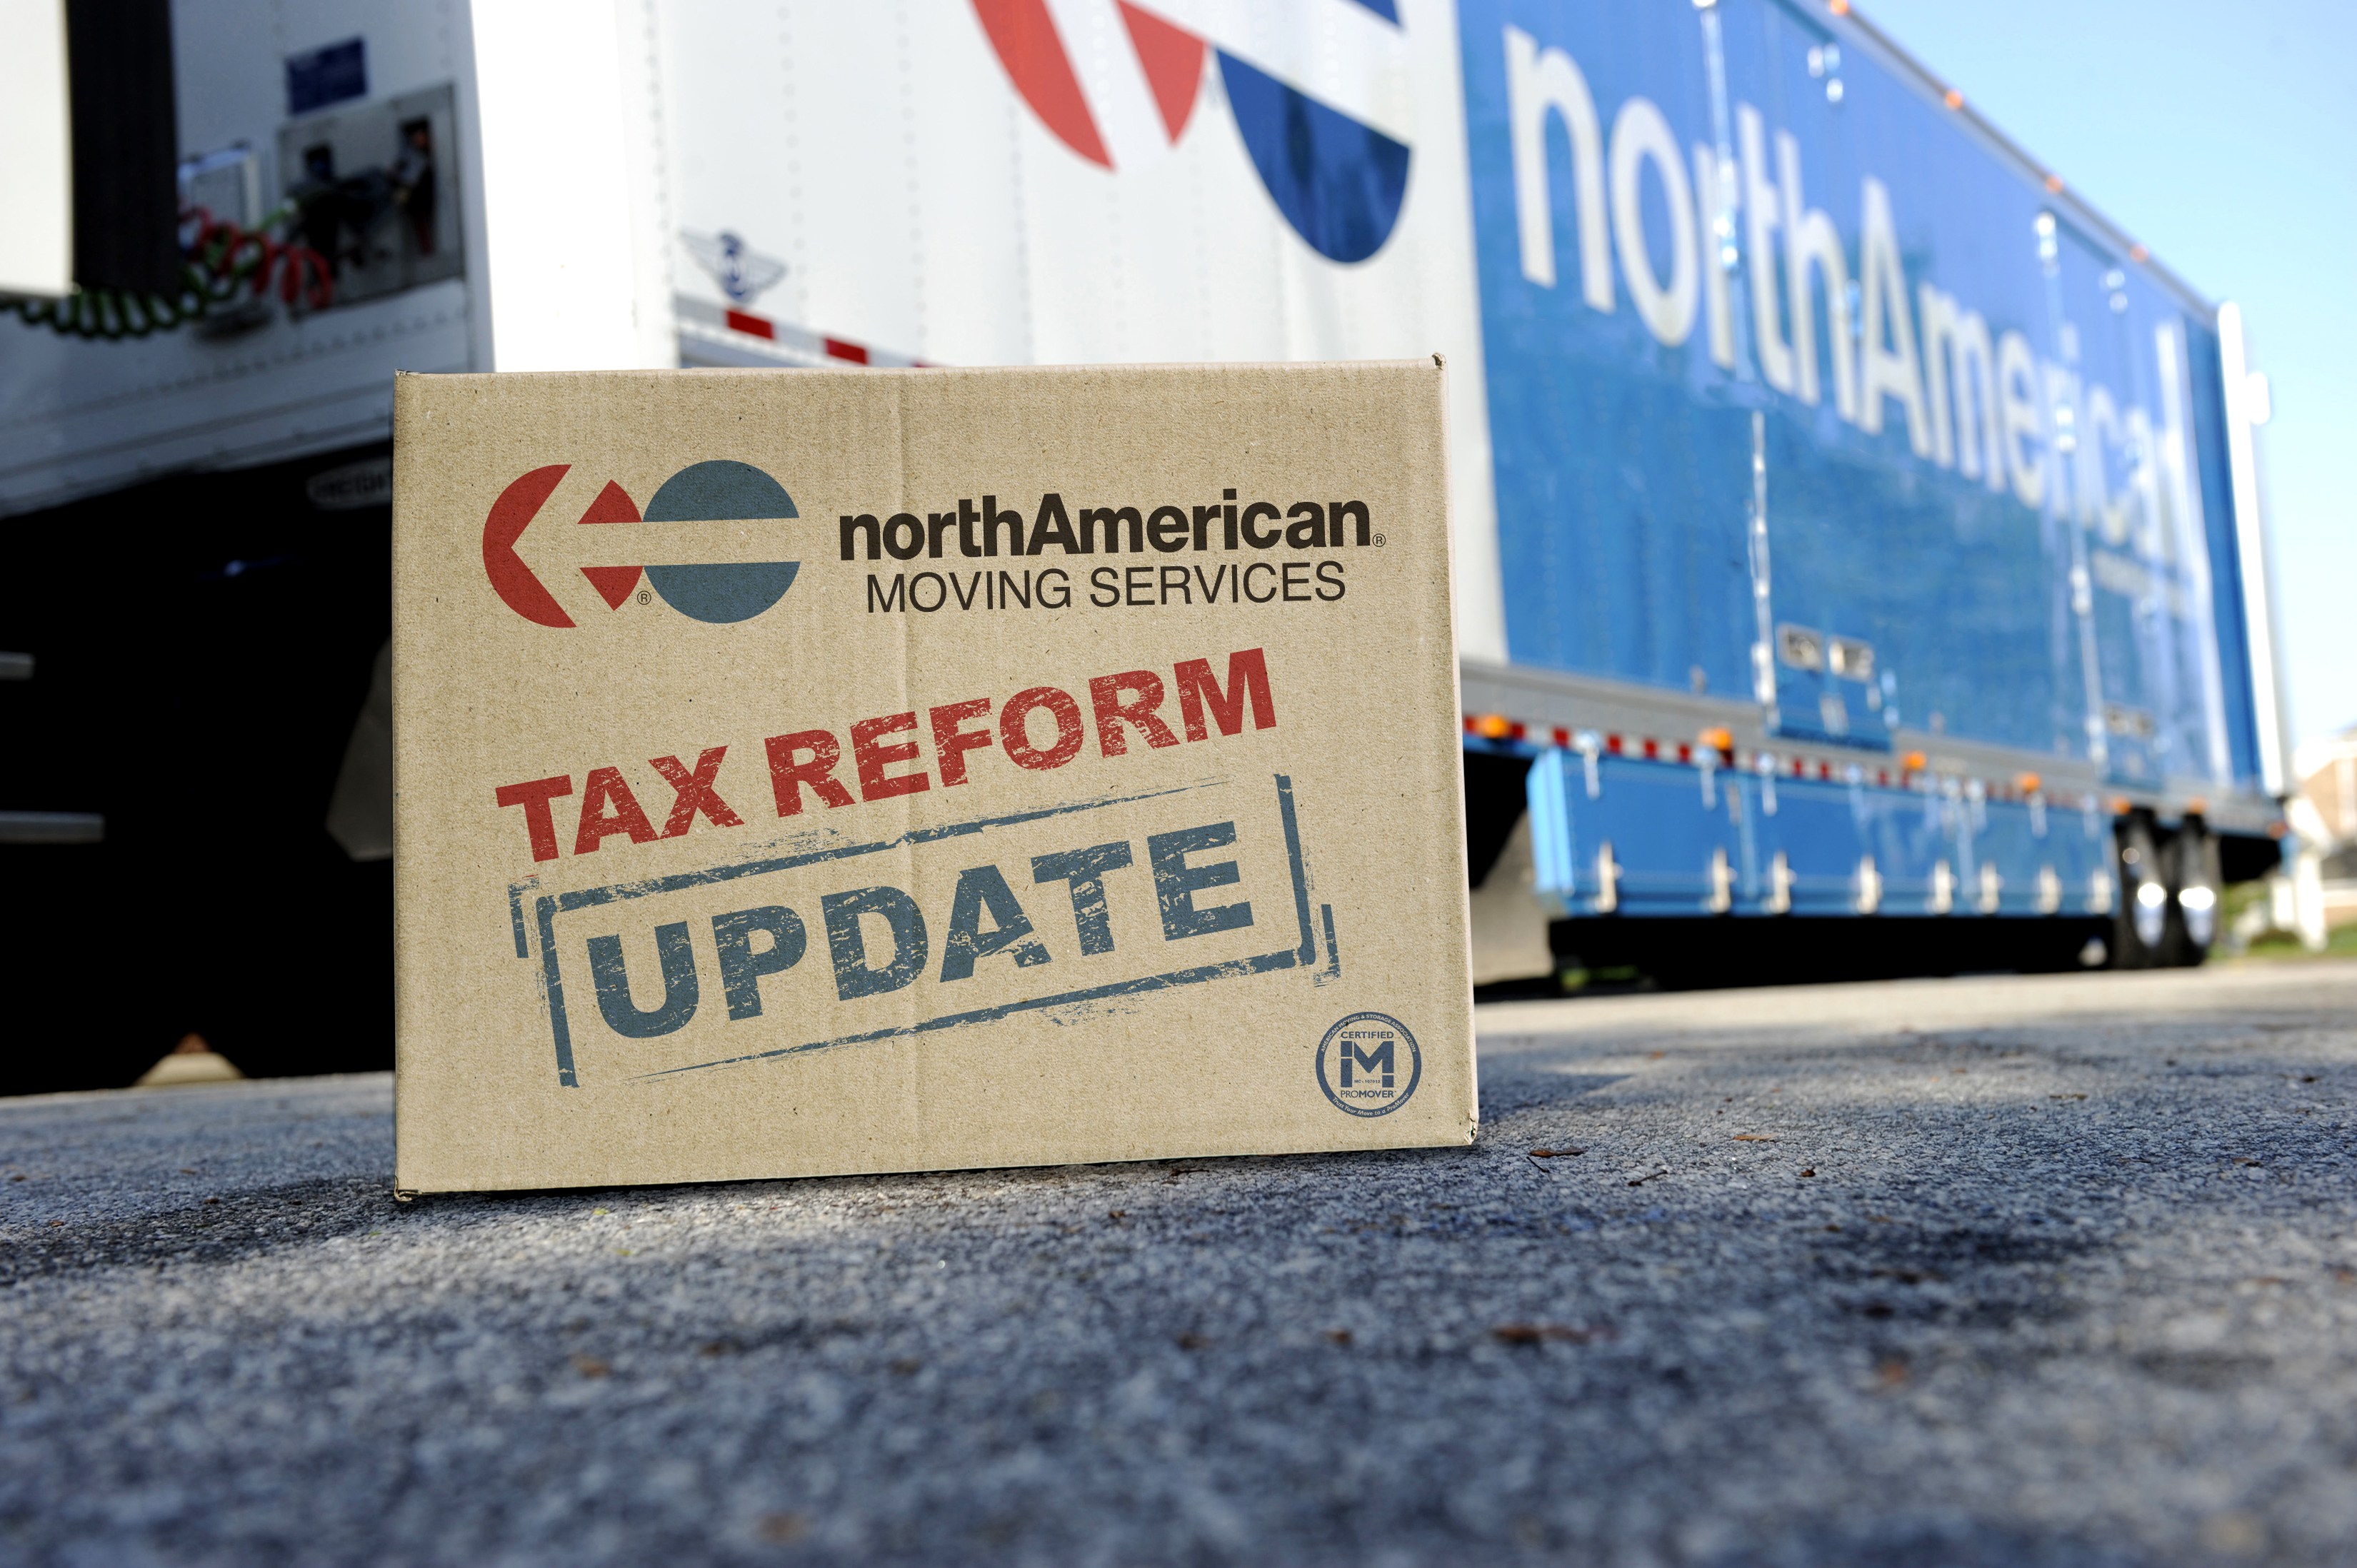 nA_Tax Reform_truck box in foreground_6 072618